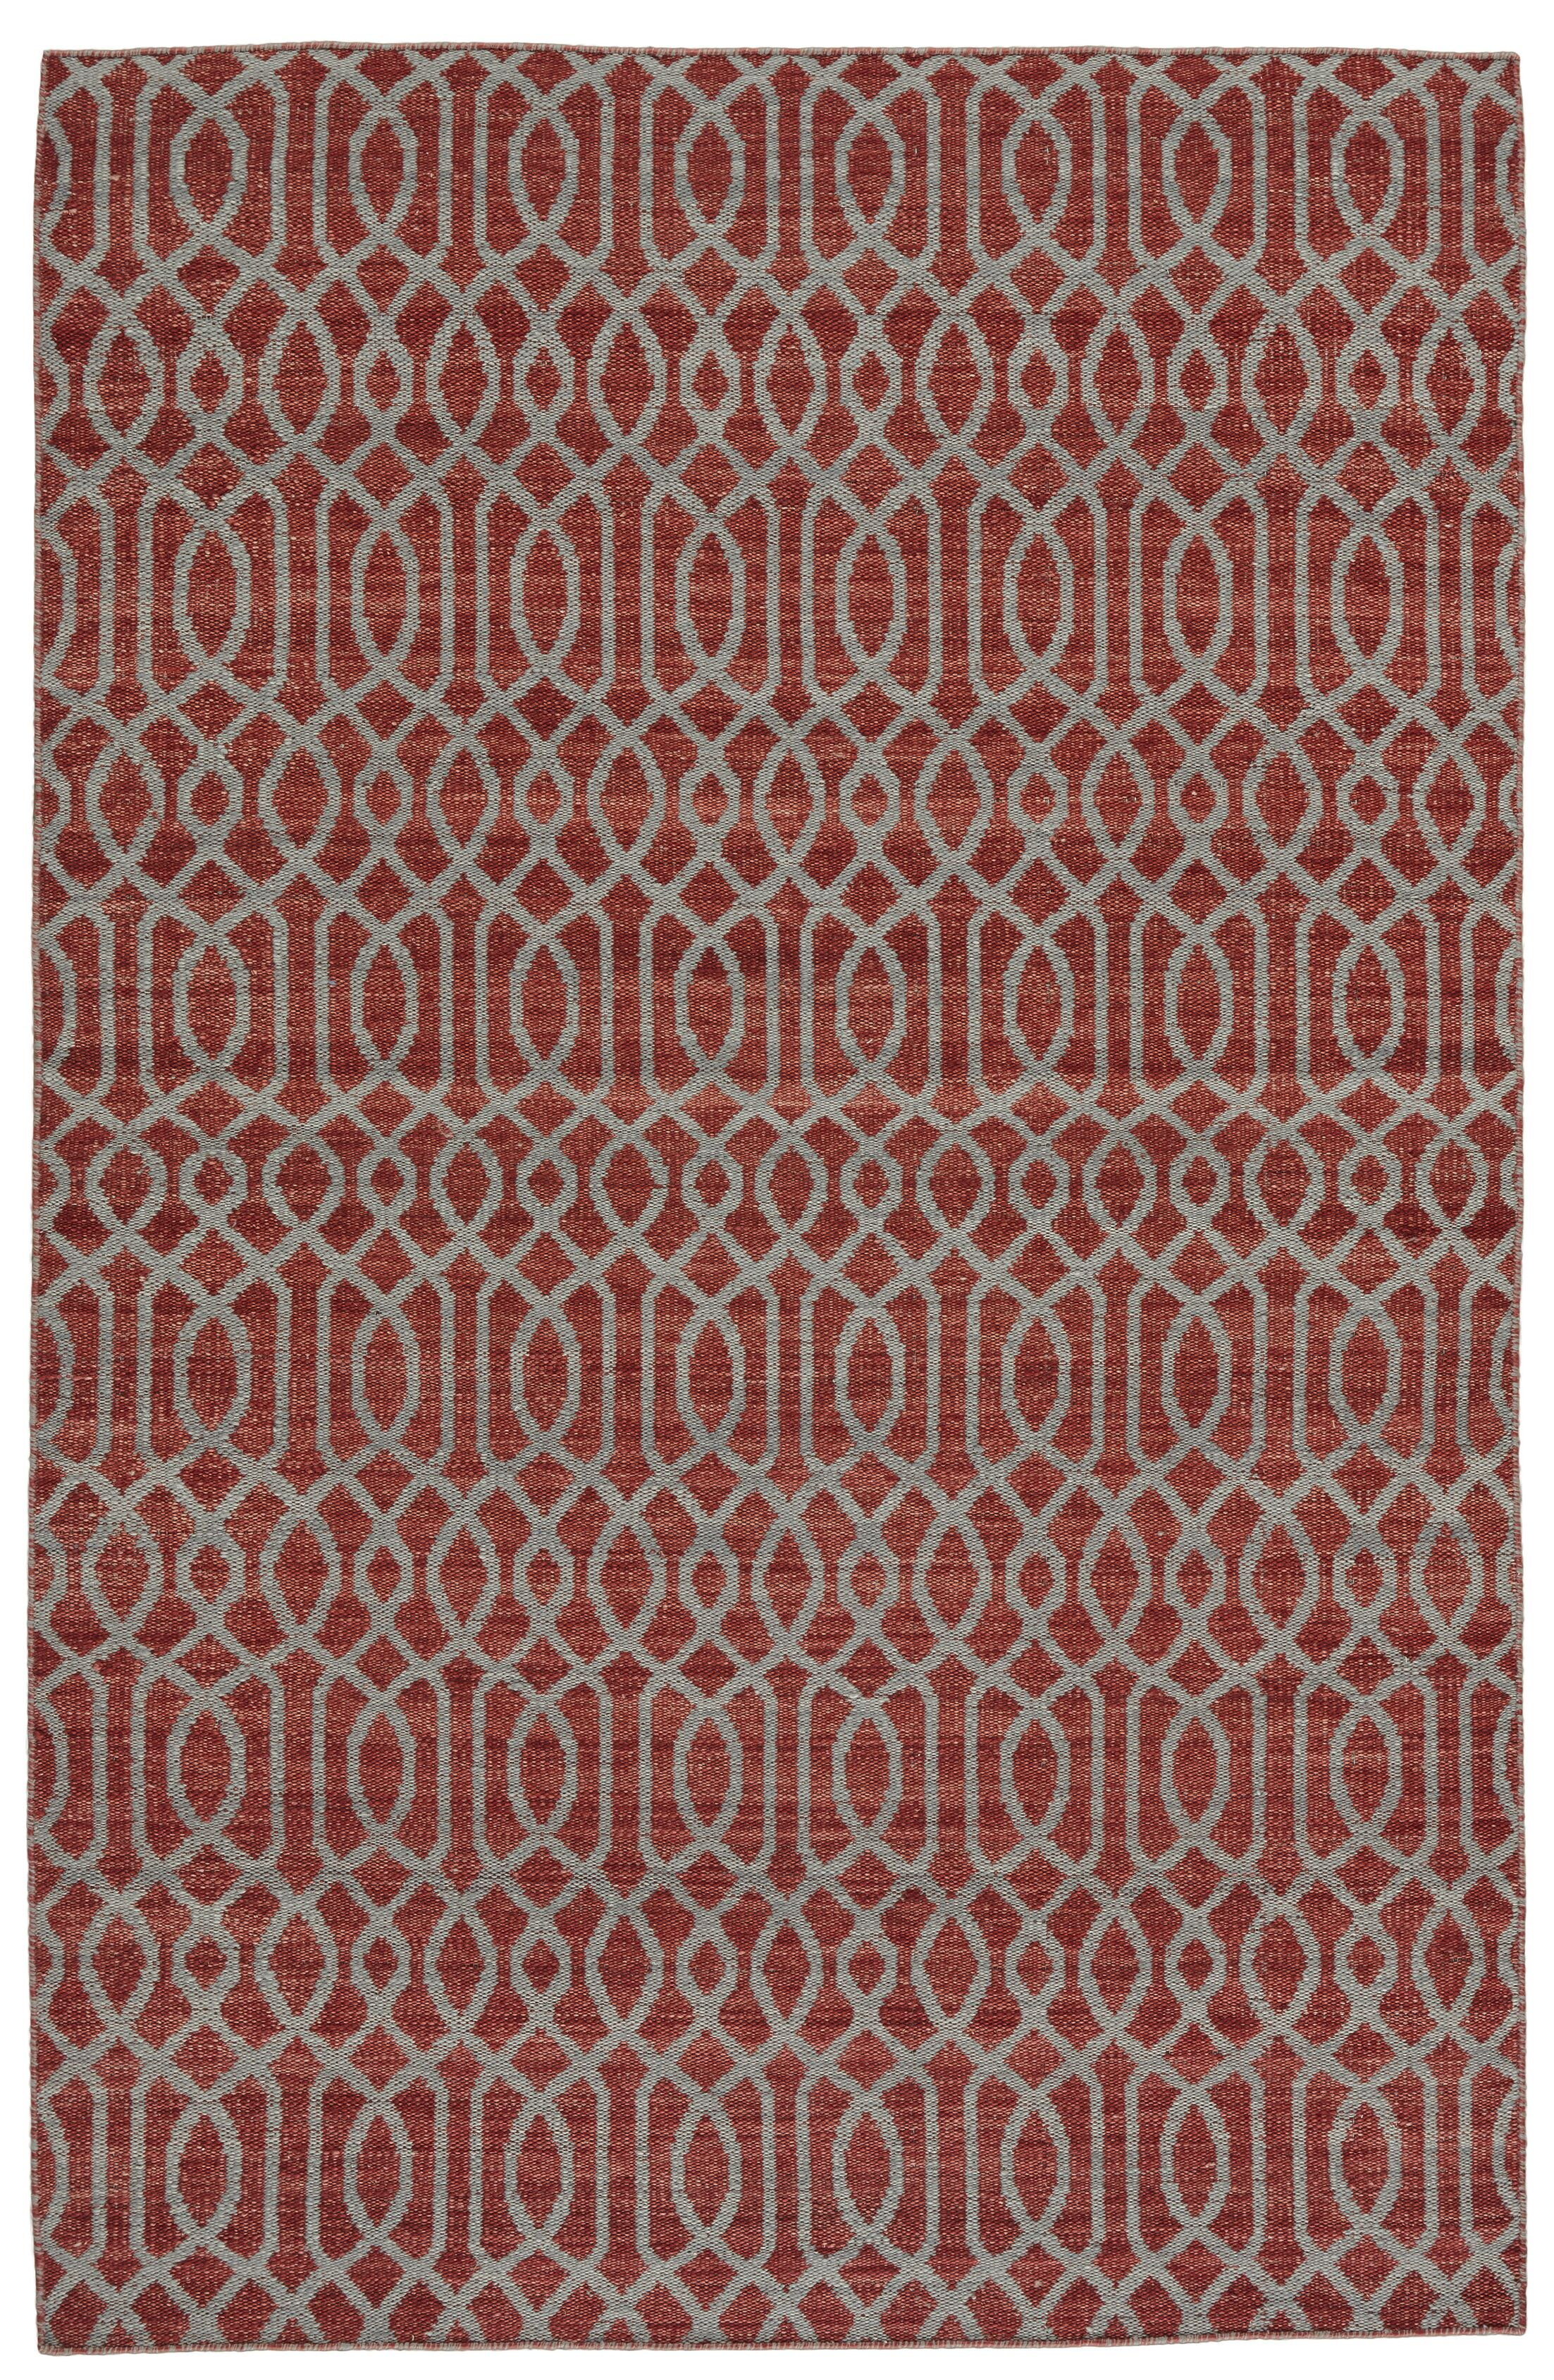 Bannerdown Hand-Loomed Red Area Rug Rug Size: Rectangle 8' x 10'